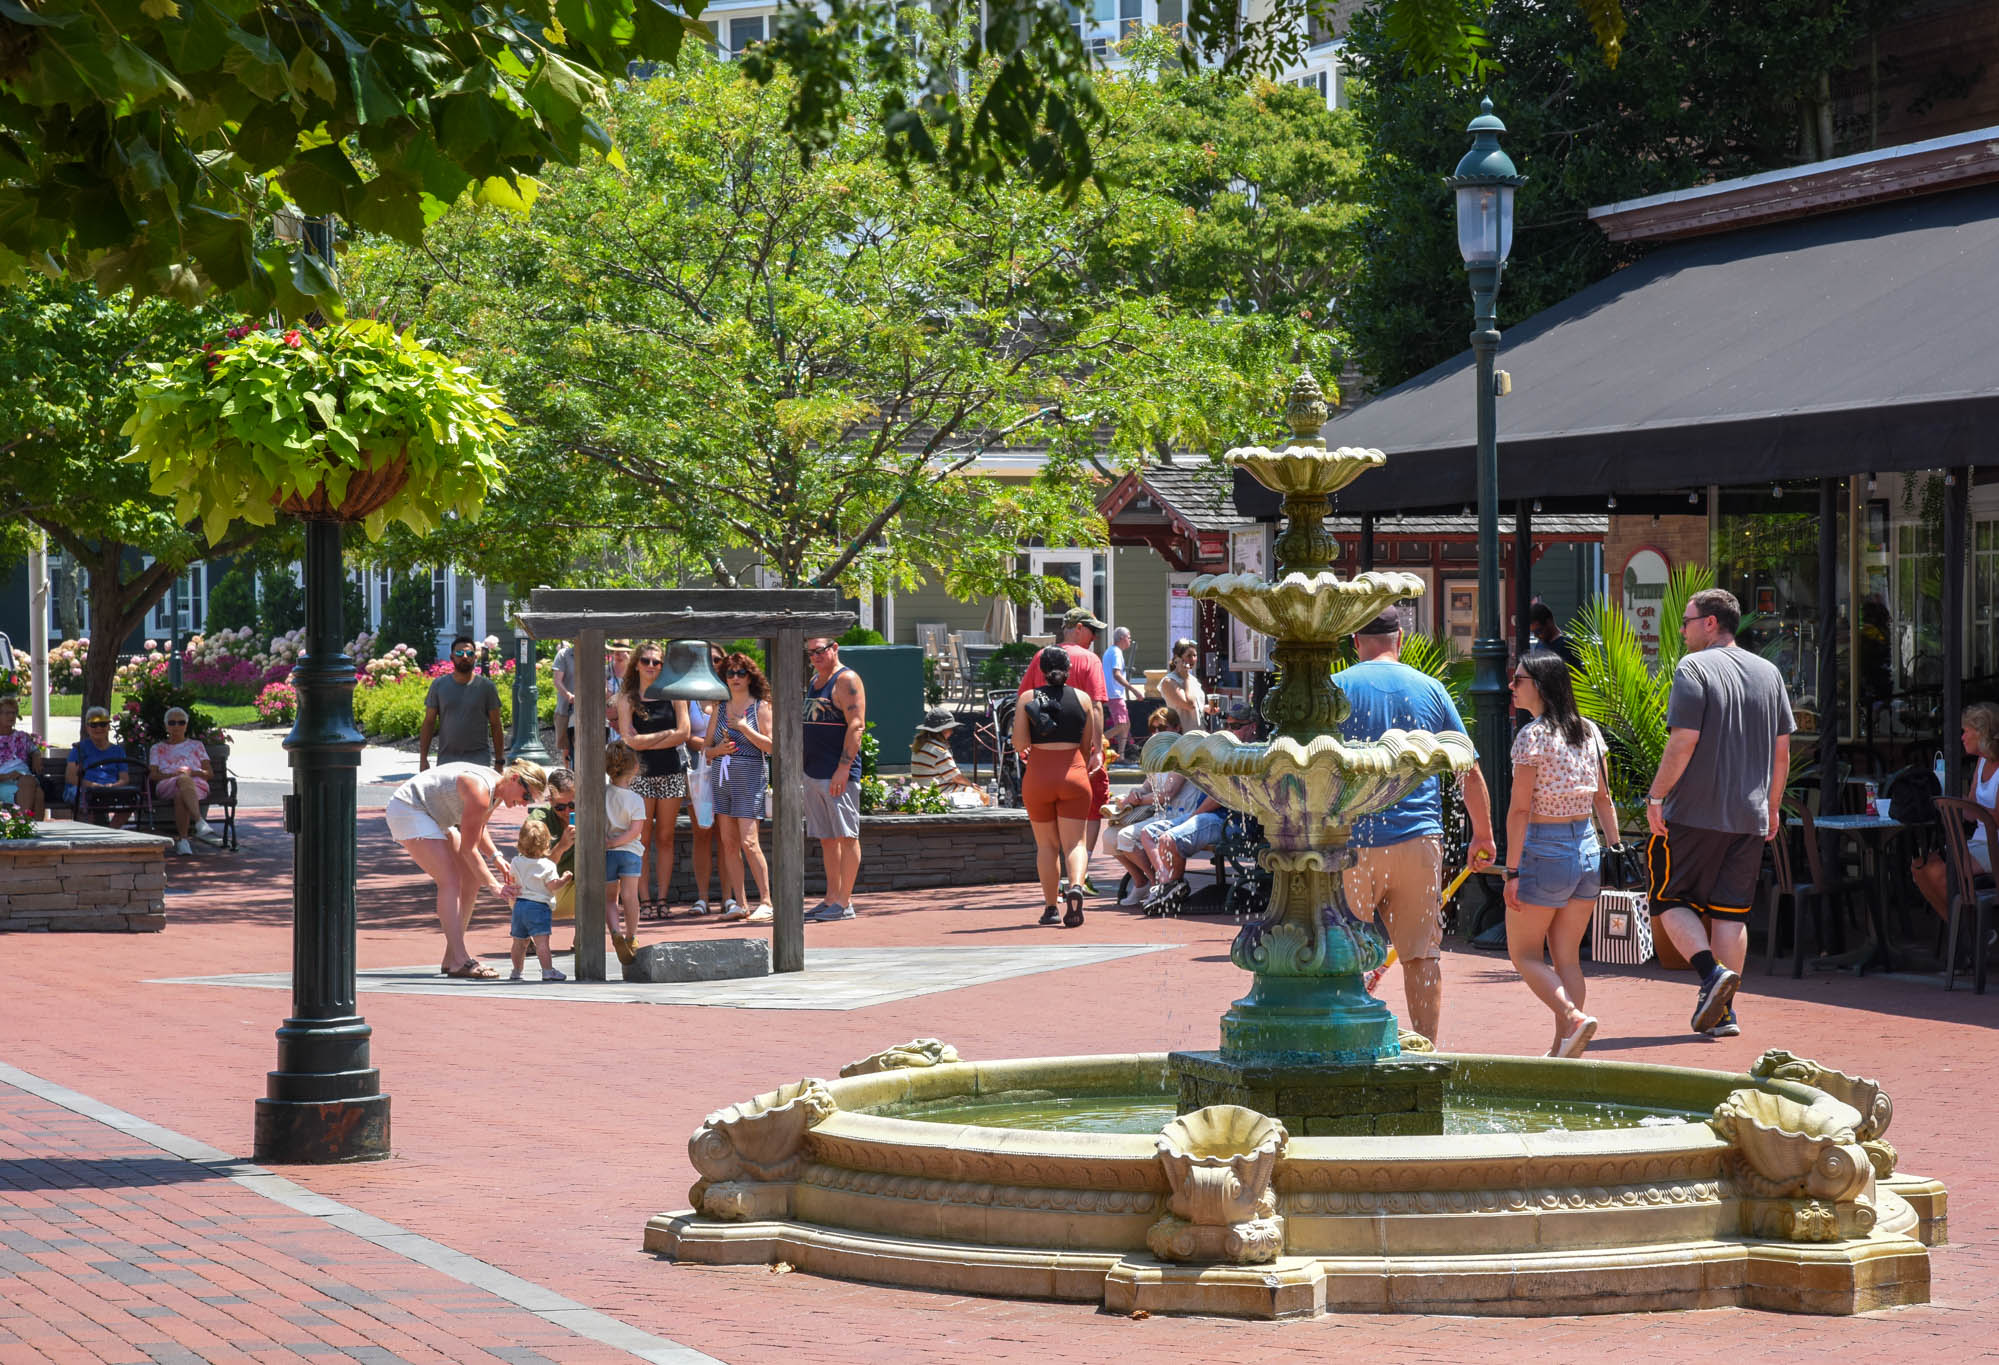 Washington Street Mall with people all around on a July Day